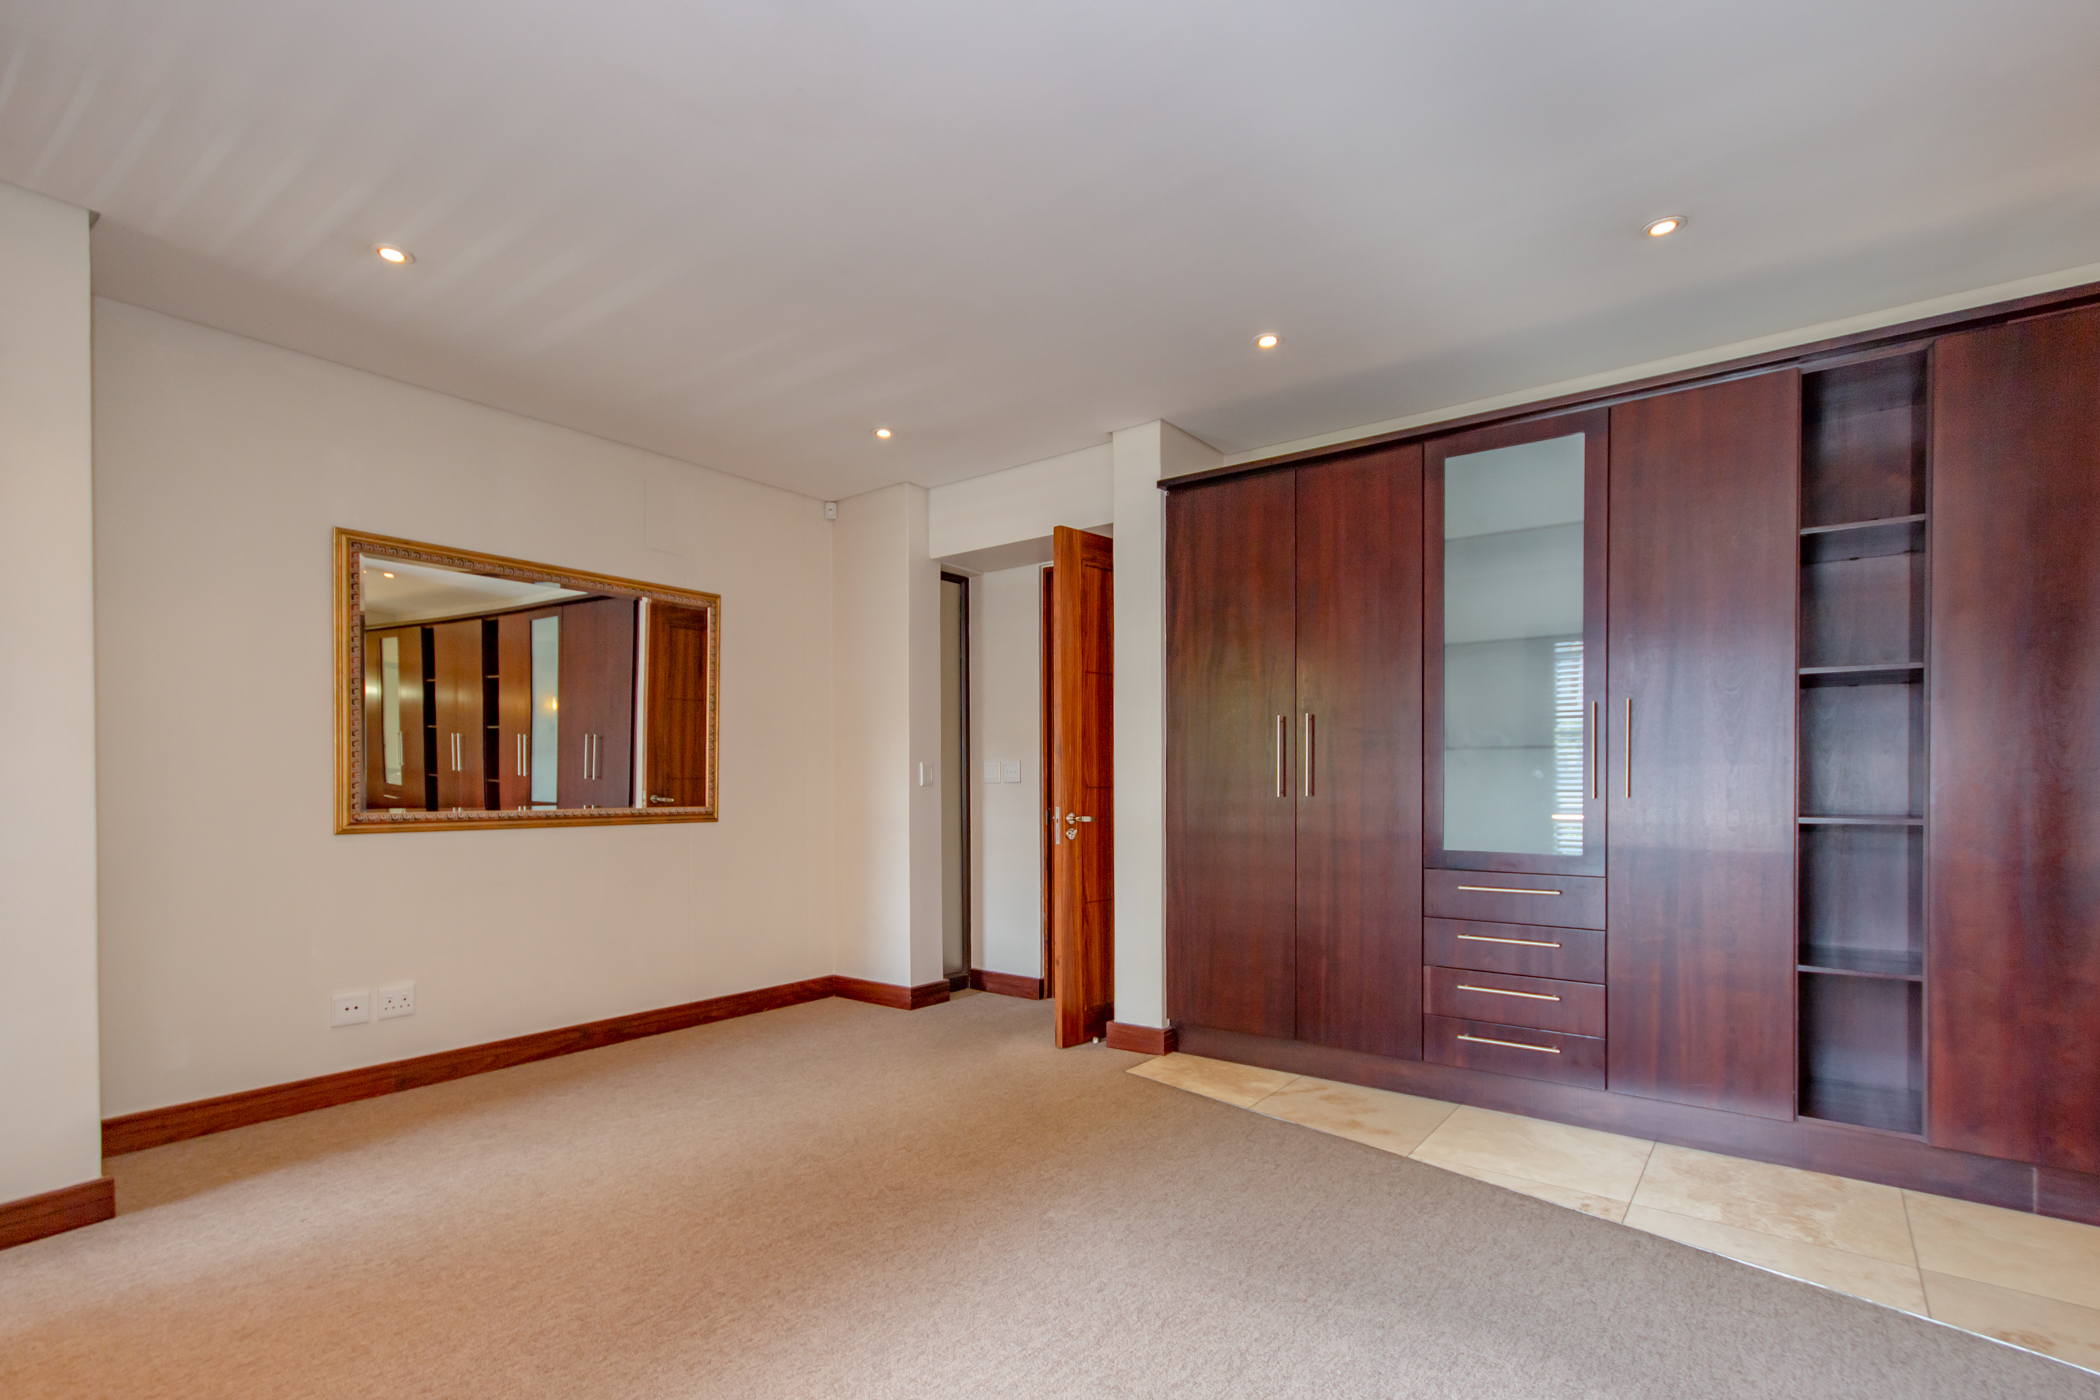 """""""Melrose arch luxury apartment bedroom with built in cupboards and en-suite bathroom"""" """"Flats for rent in Johannesburg"""""""